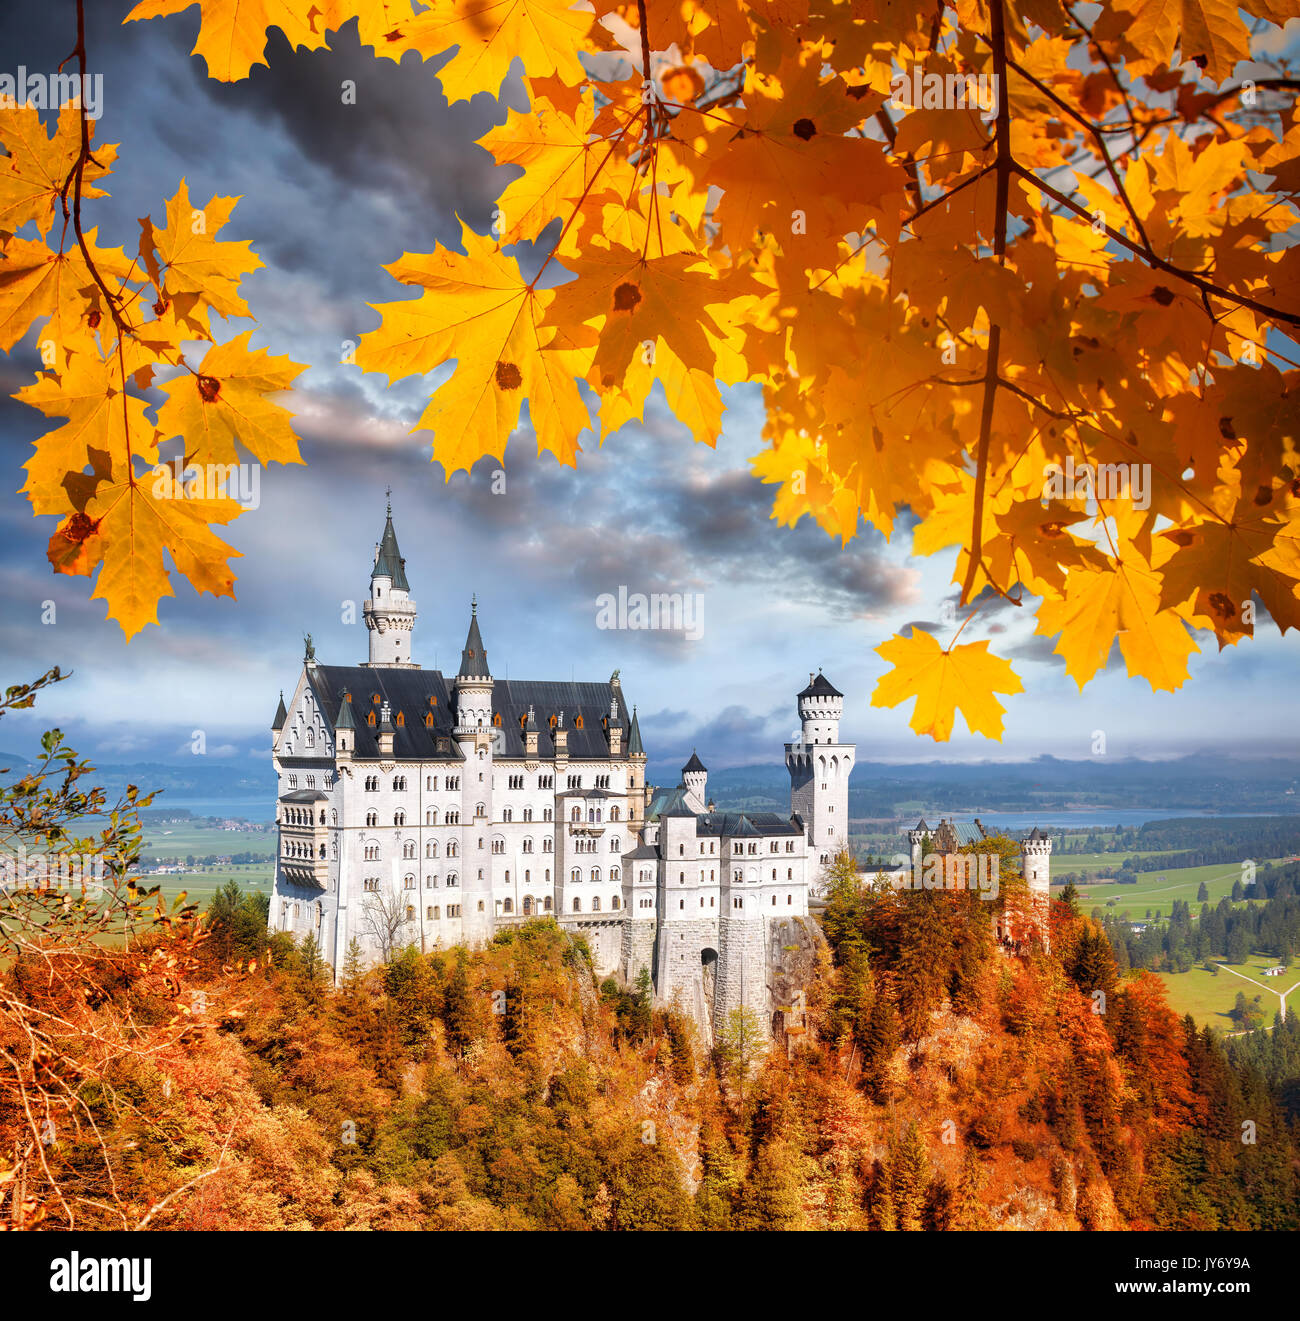 Famous Neuschwanstein castle in Bavaria with autumn leaves, Germany - Stock Image